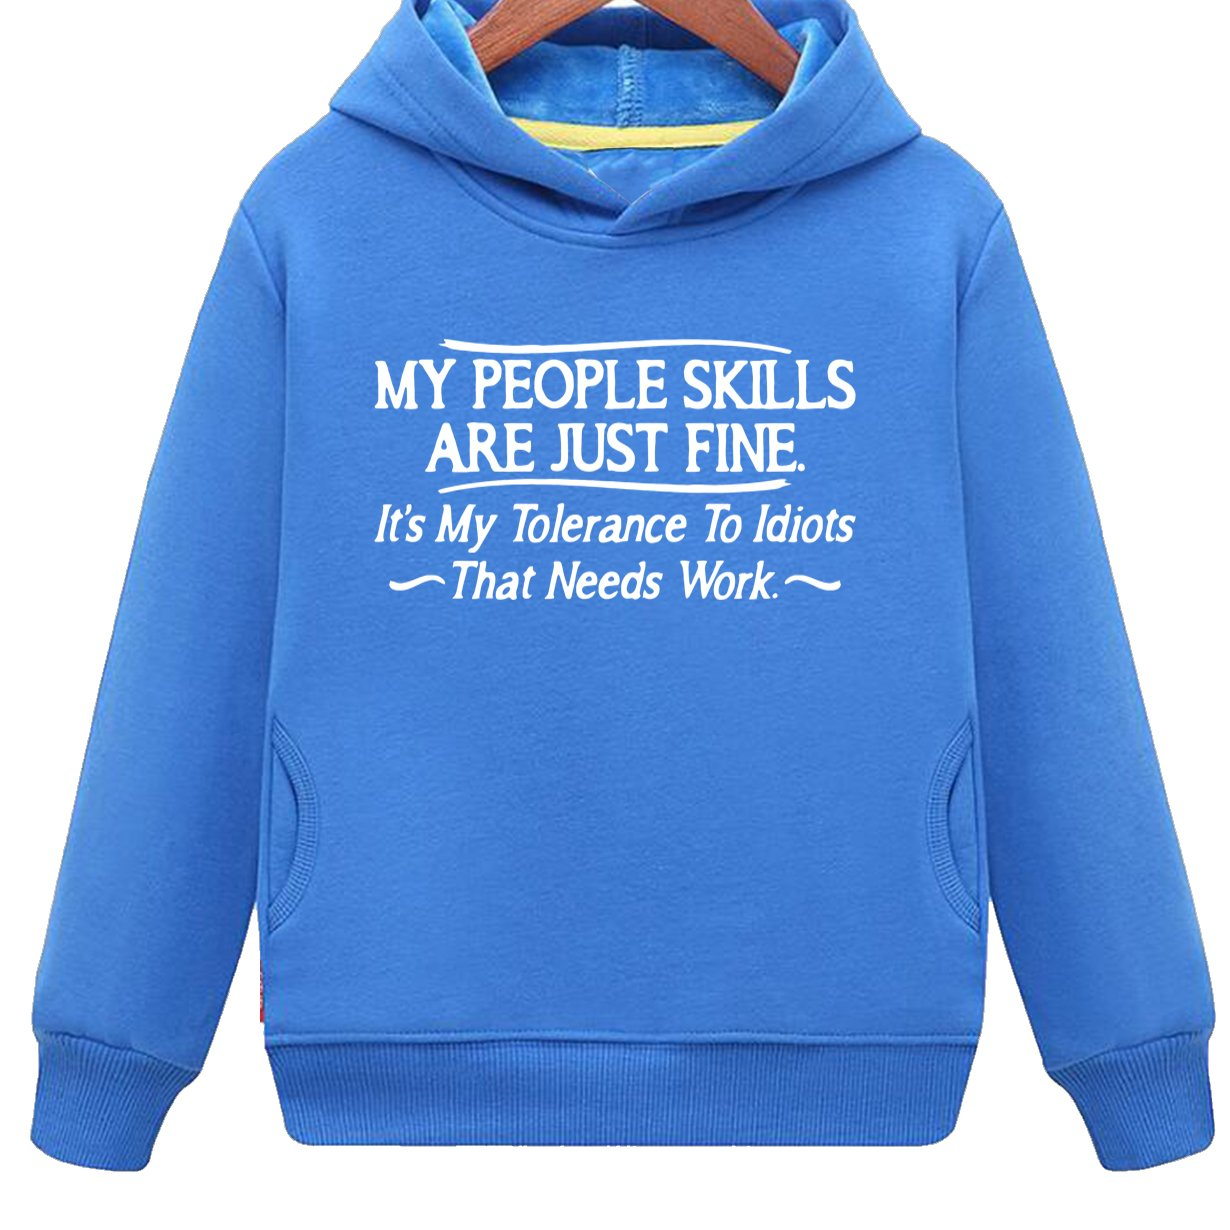 Kids Two Pockets My People Skills Are Fine It's My Tolerance To Idiots Hoodie (2T,Blue)